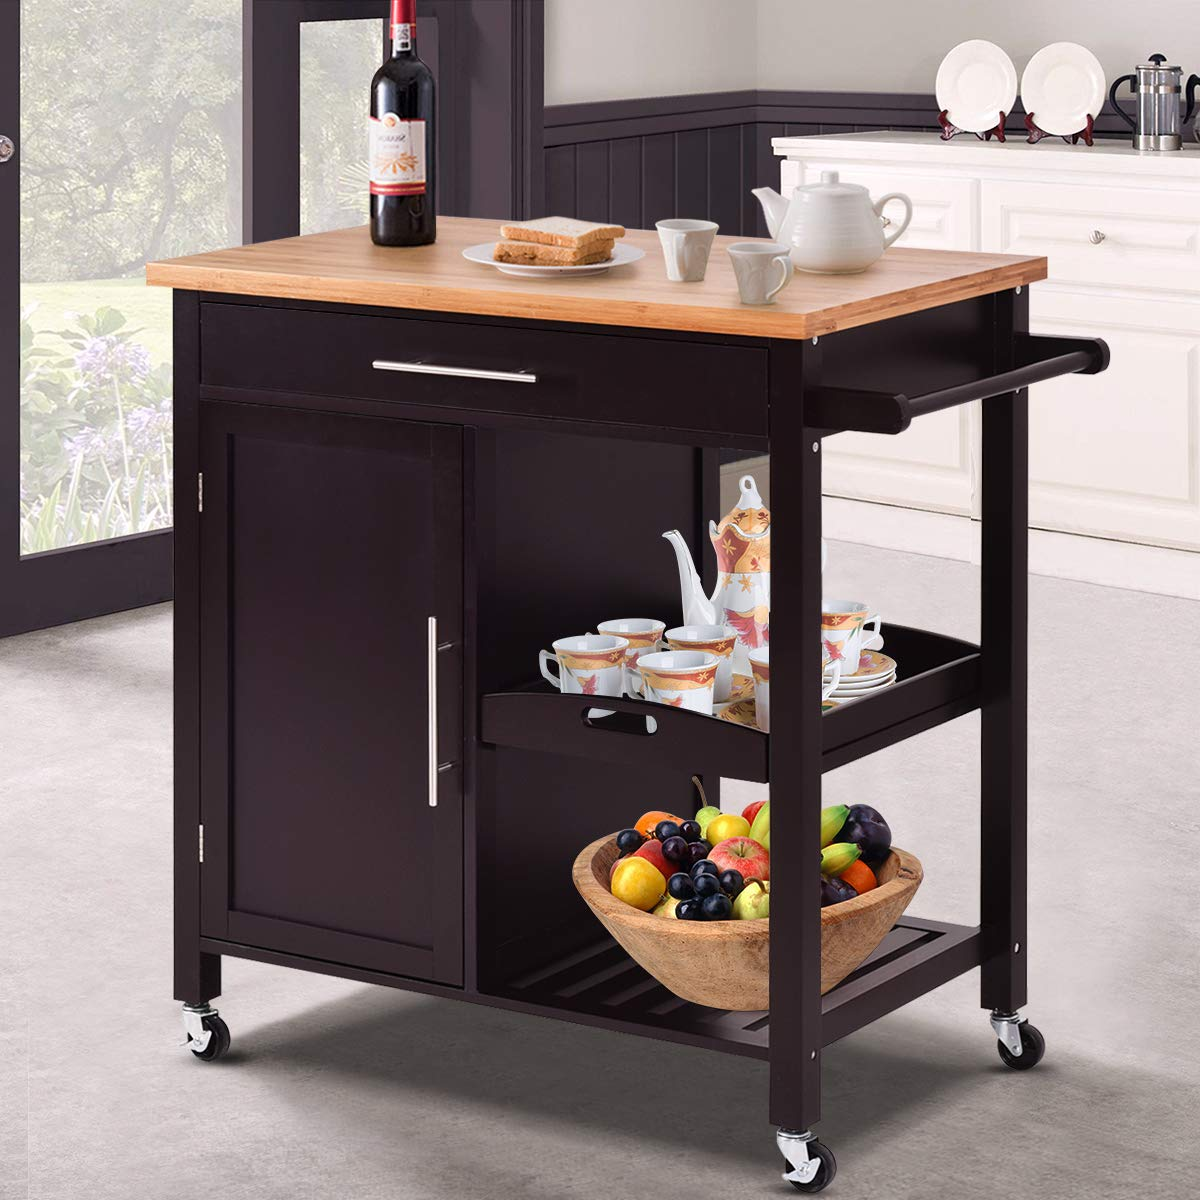 Giantex Kitchen Trolley Cart Wood Rolling Island Cart Home Restaurant Kitchen Dining Room Serving Utility Cart w/Bamboo Top Storage Cabinet Bigger Drawer Removable Tray Shelf, Brown by Giantex (Image #3)